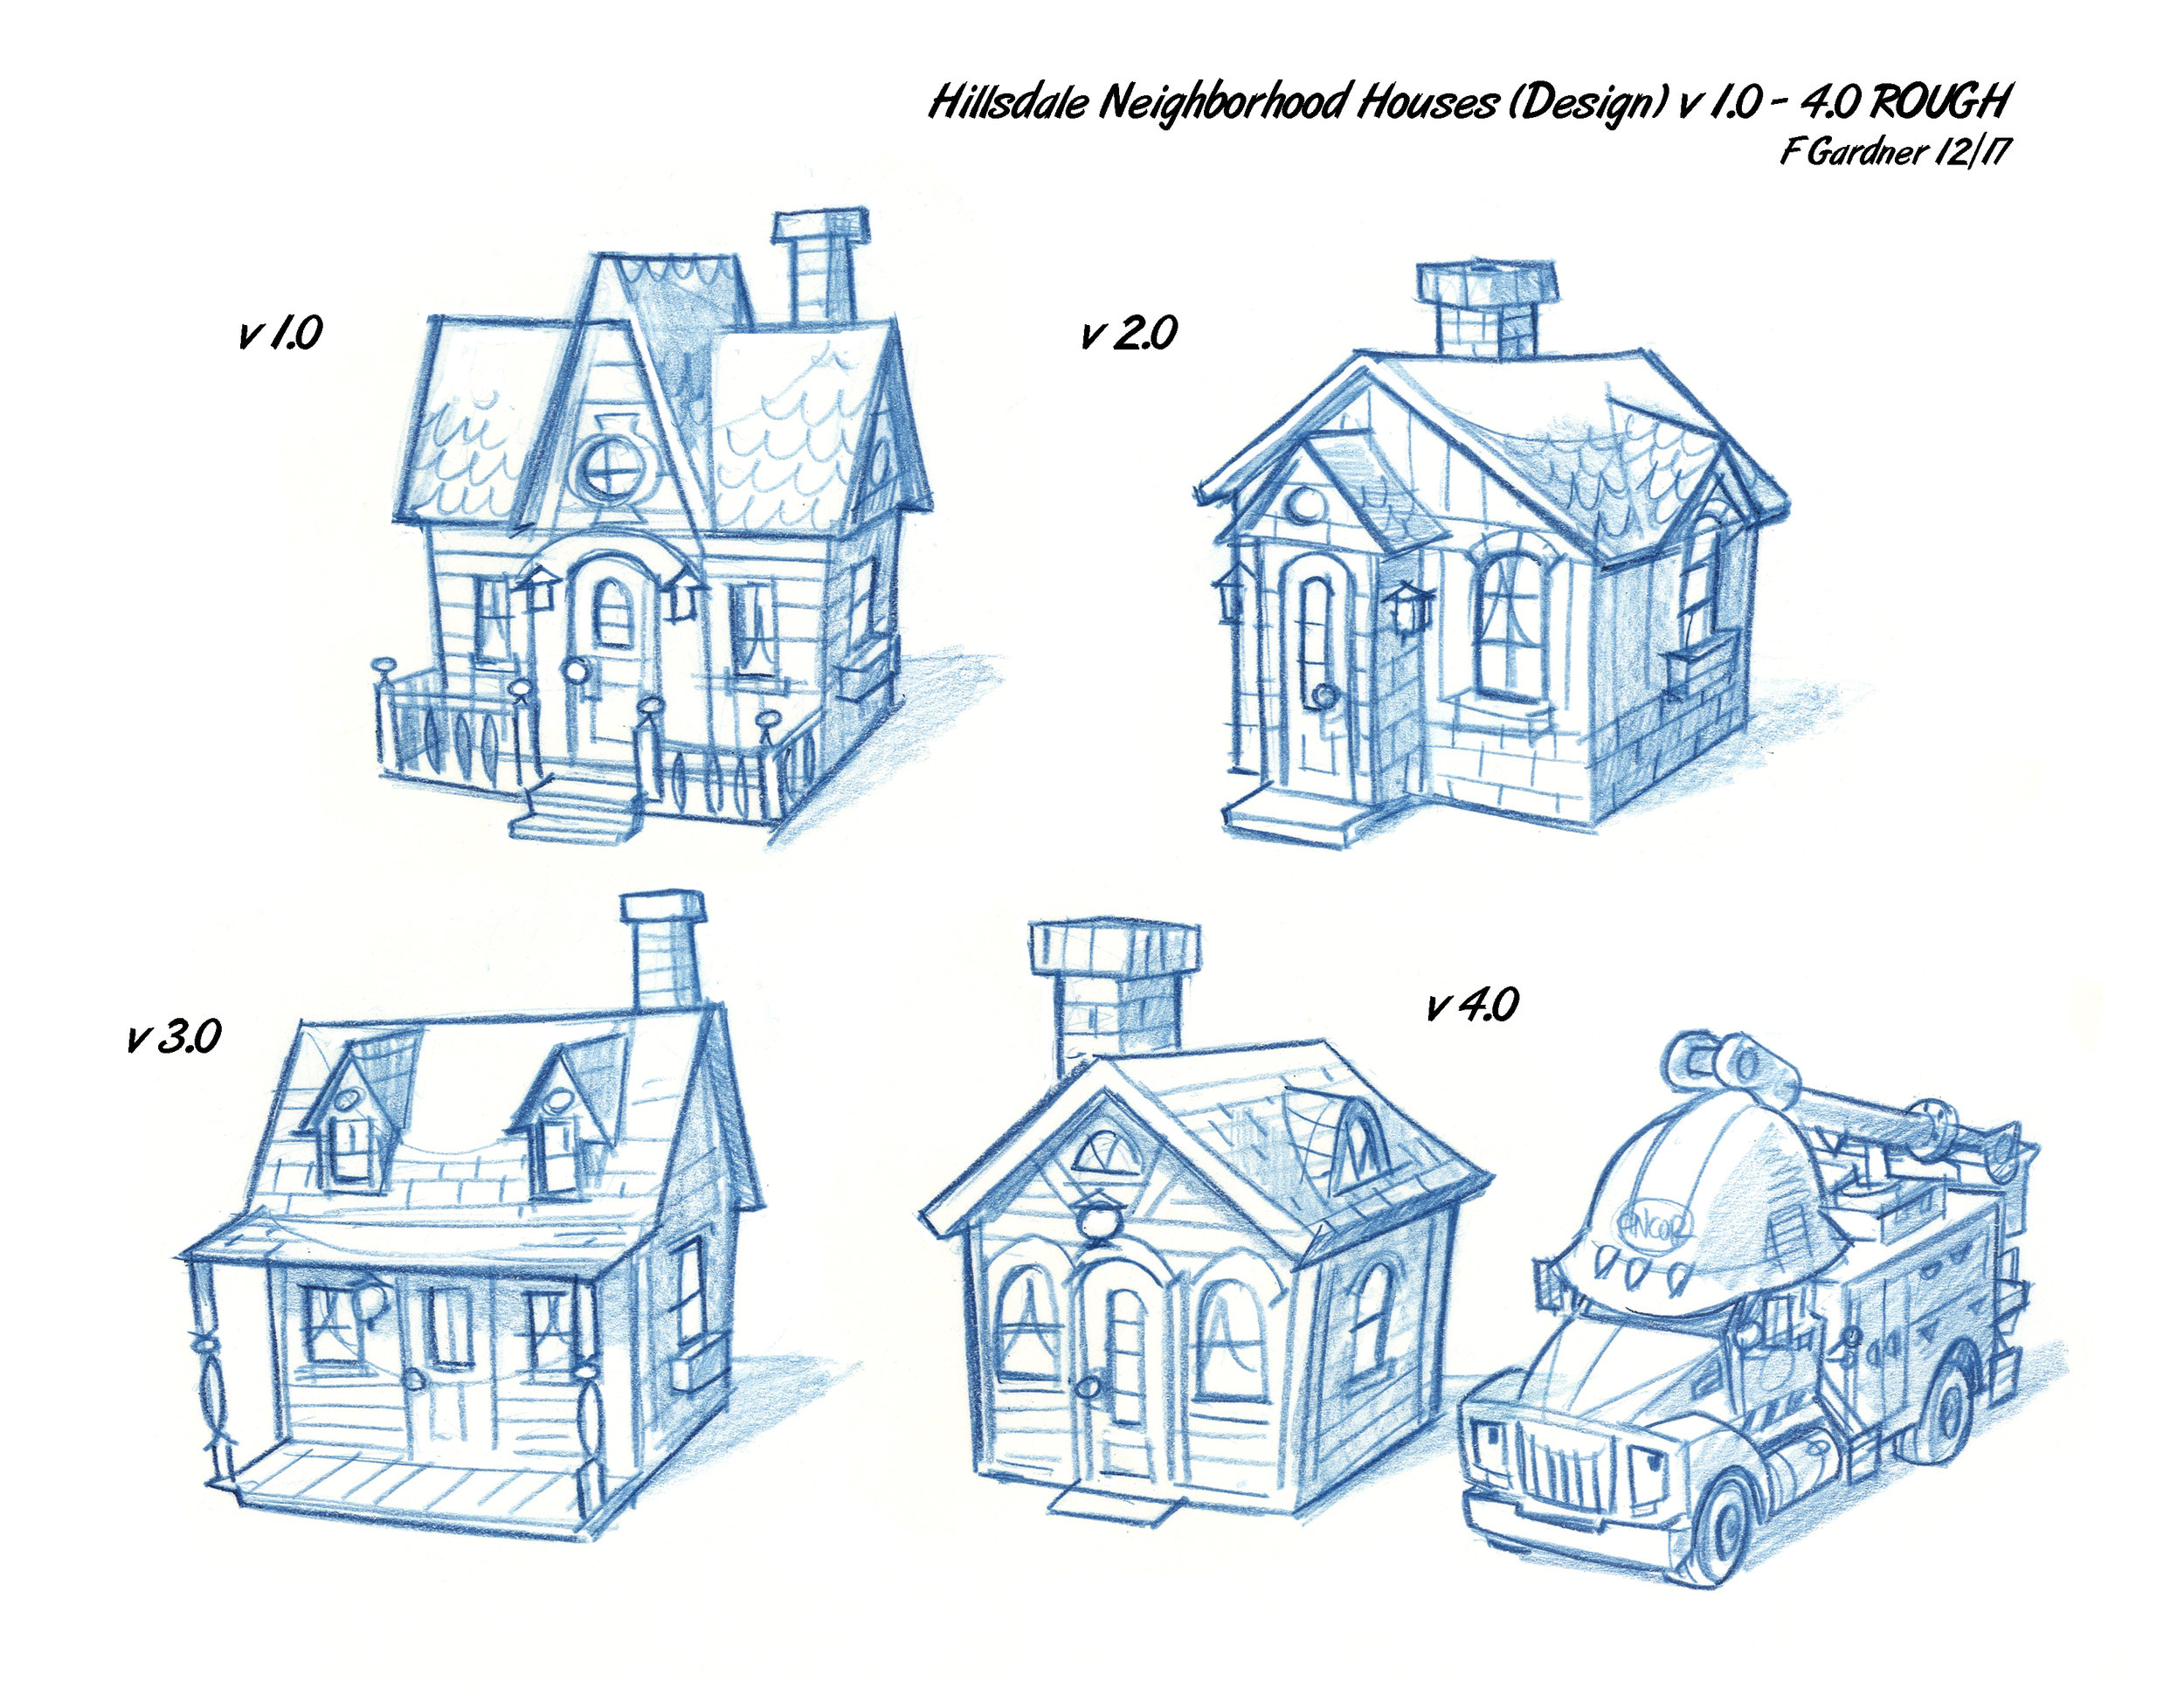 HillsdaleNeighborhoodHouses_Design_V1.0_4.0_ROUGH.jpg